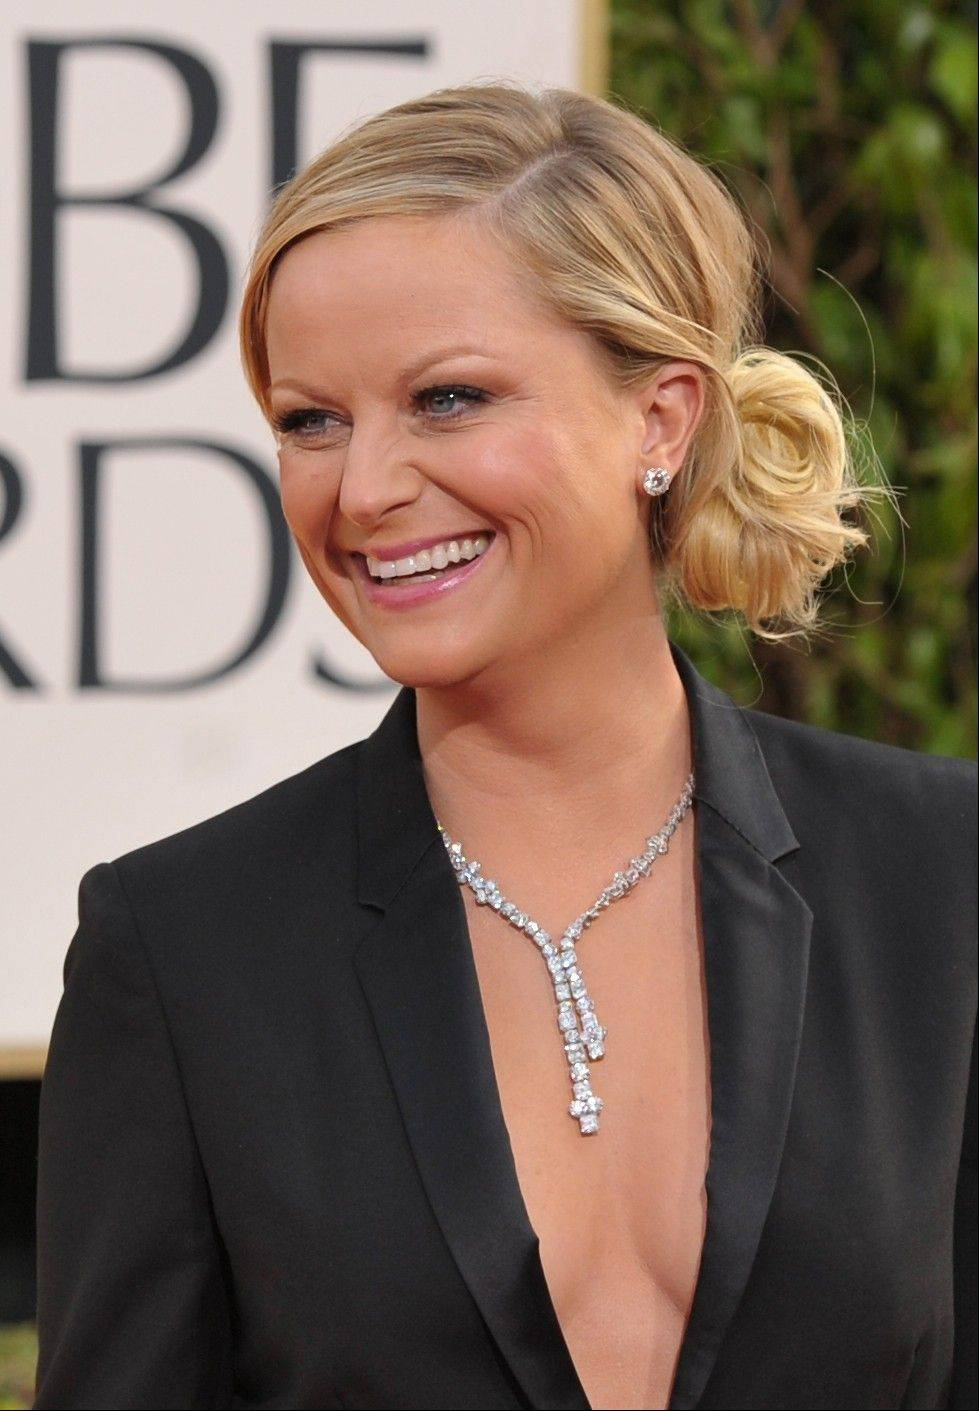 Amy Poehler arrives at the 70th Annual Golden Globe Awards at the Beverly Hilton Hotel on Sunday Jan. 13, 2013, in Beverly Hills, Calif.